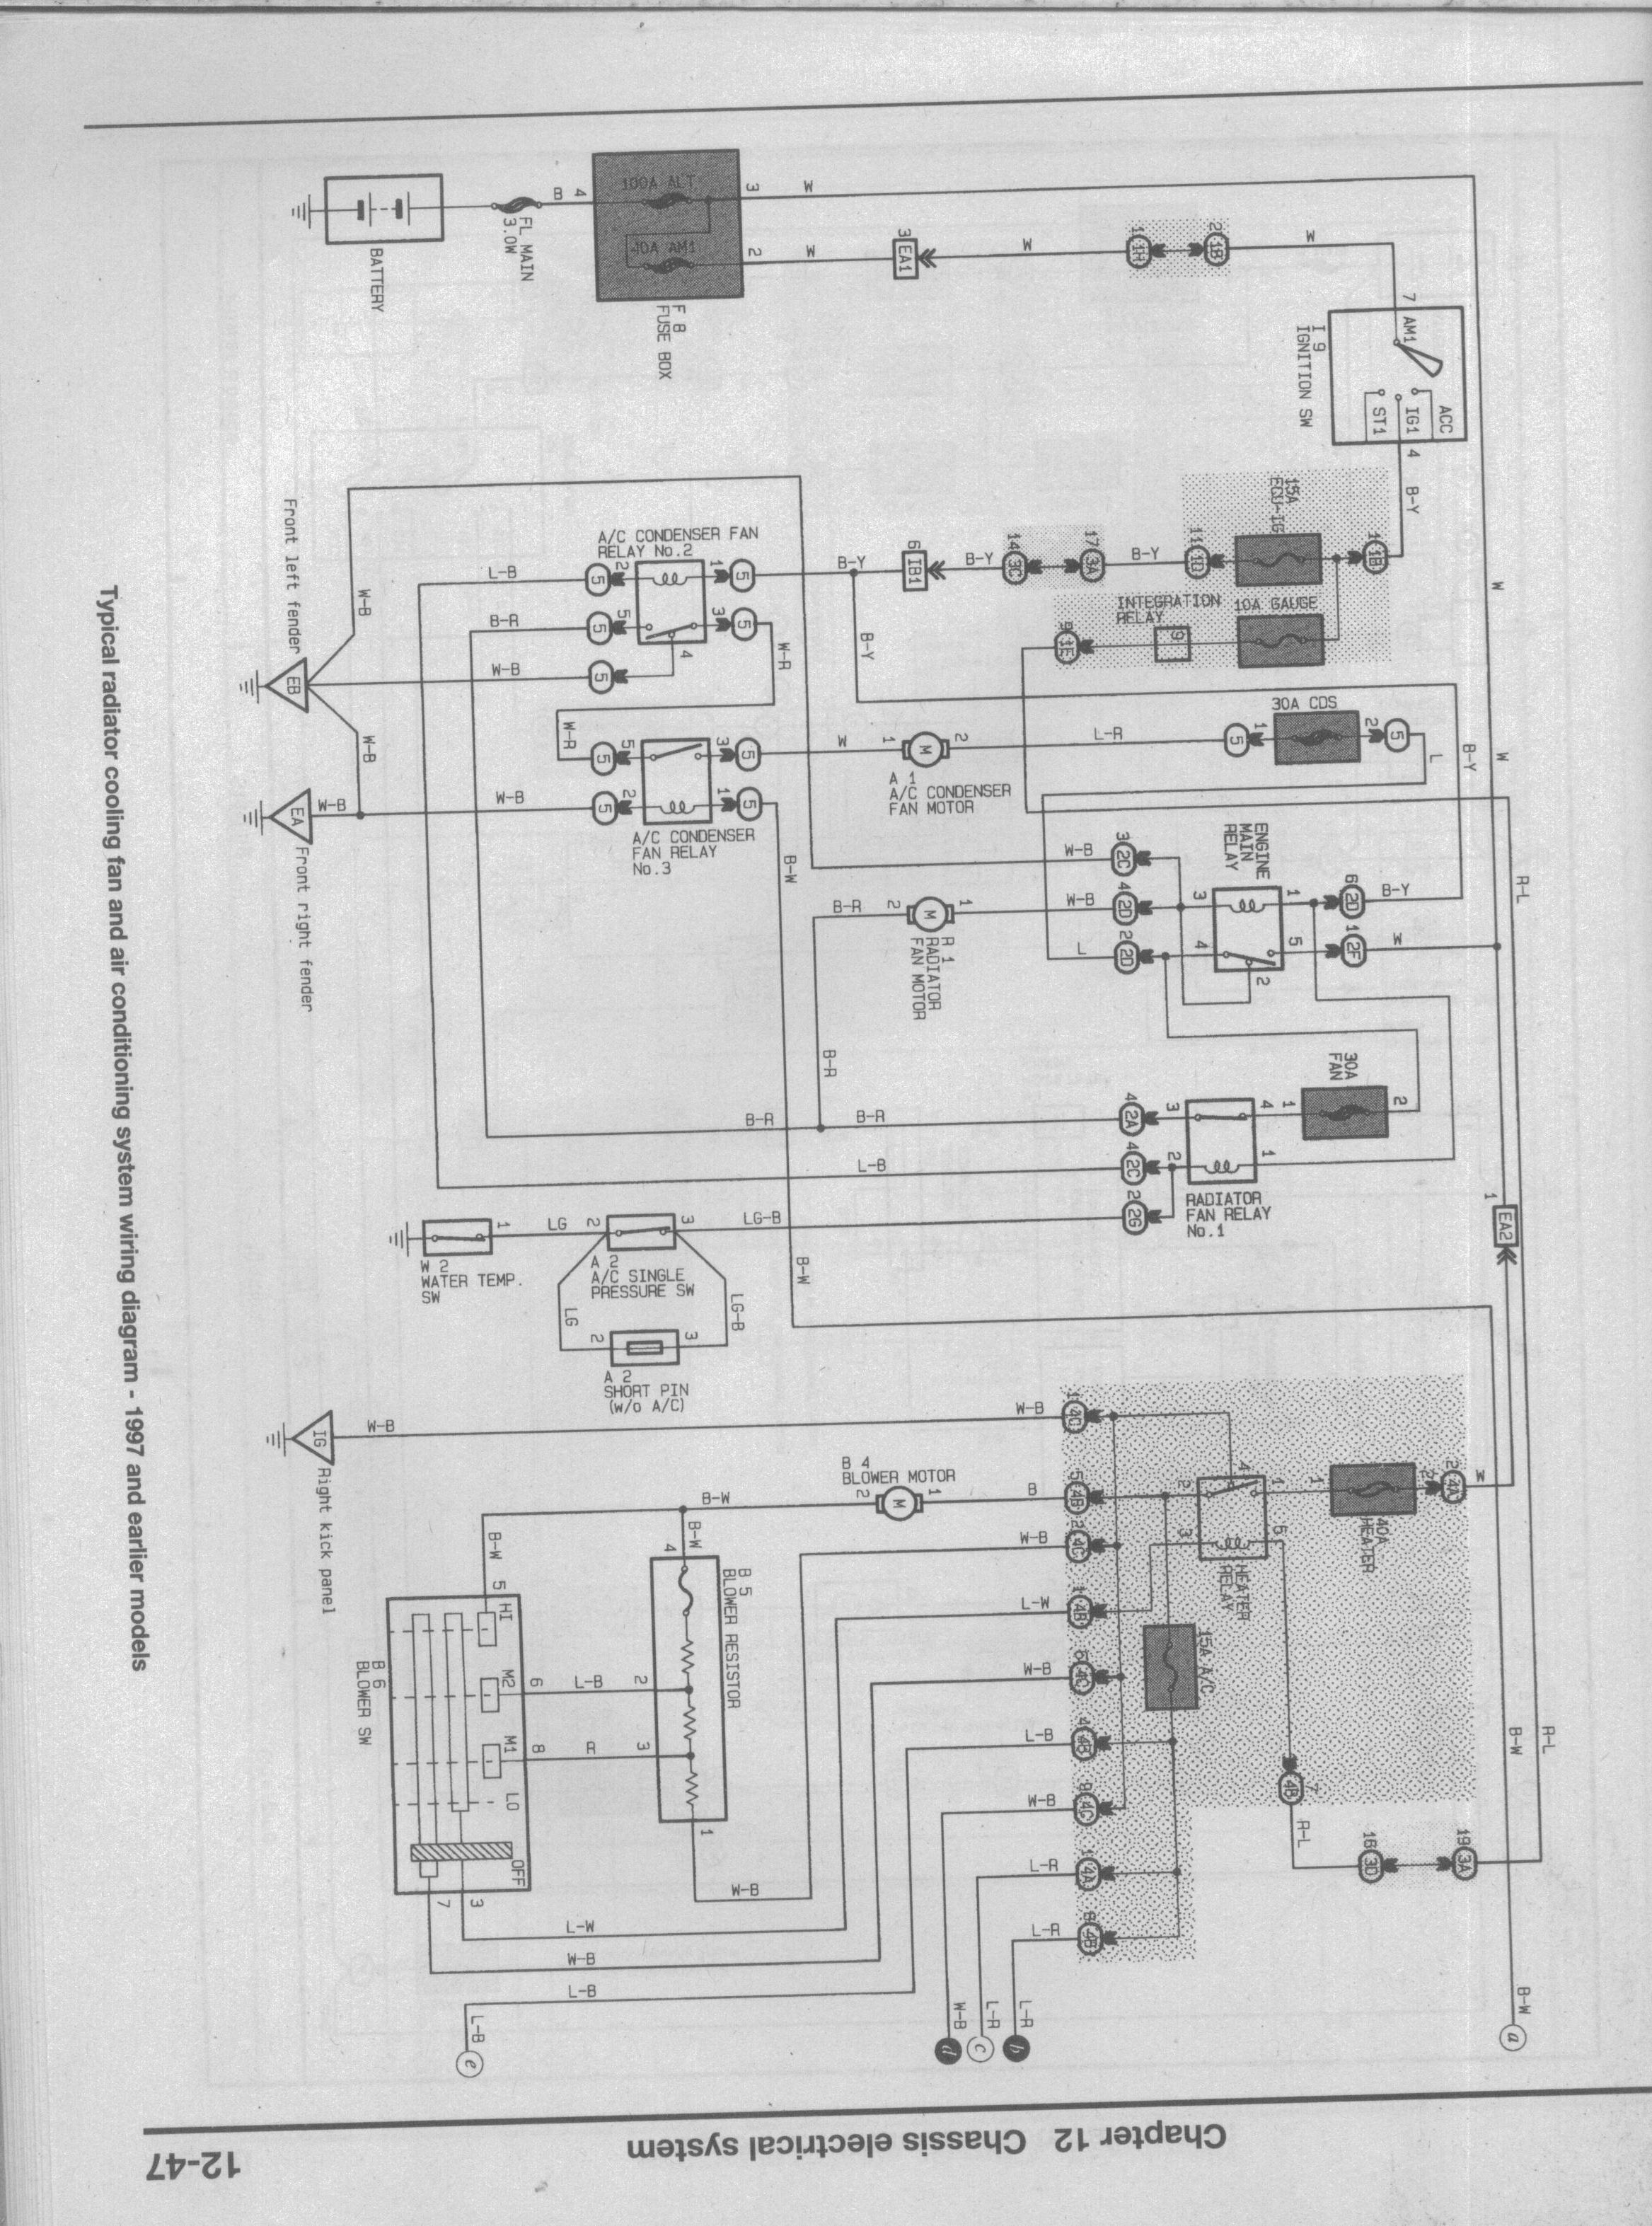 wiring diagram goodman air handler wiring diagram the wiring diagram  at gsmx.co